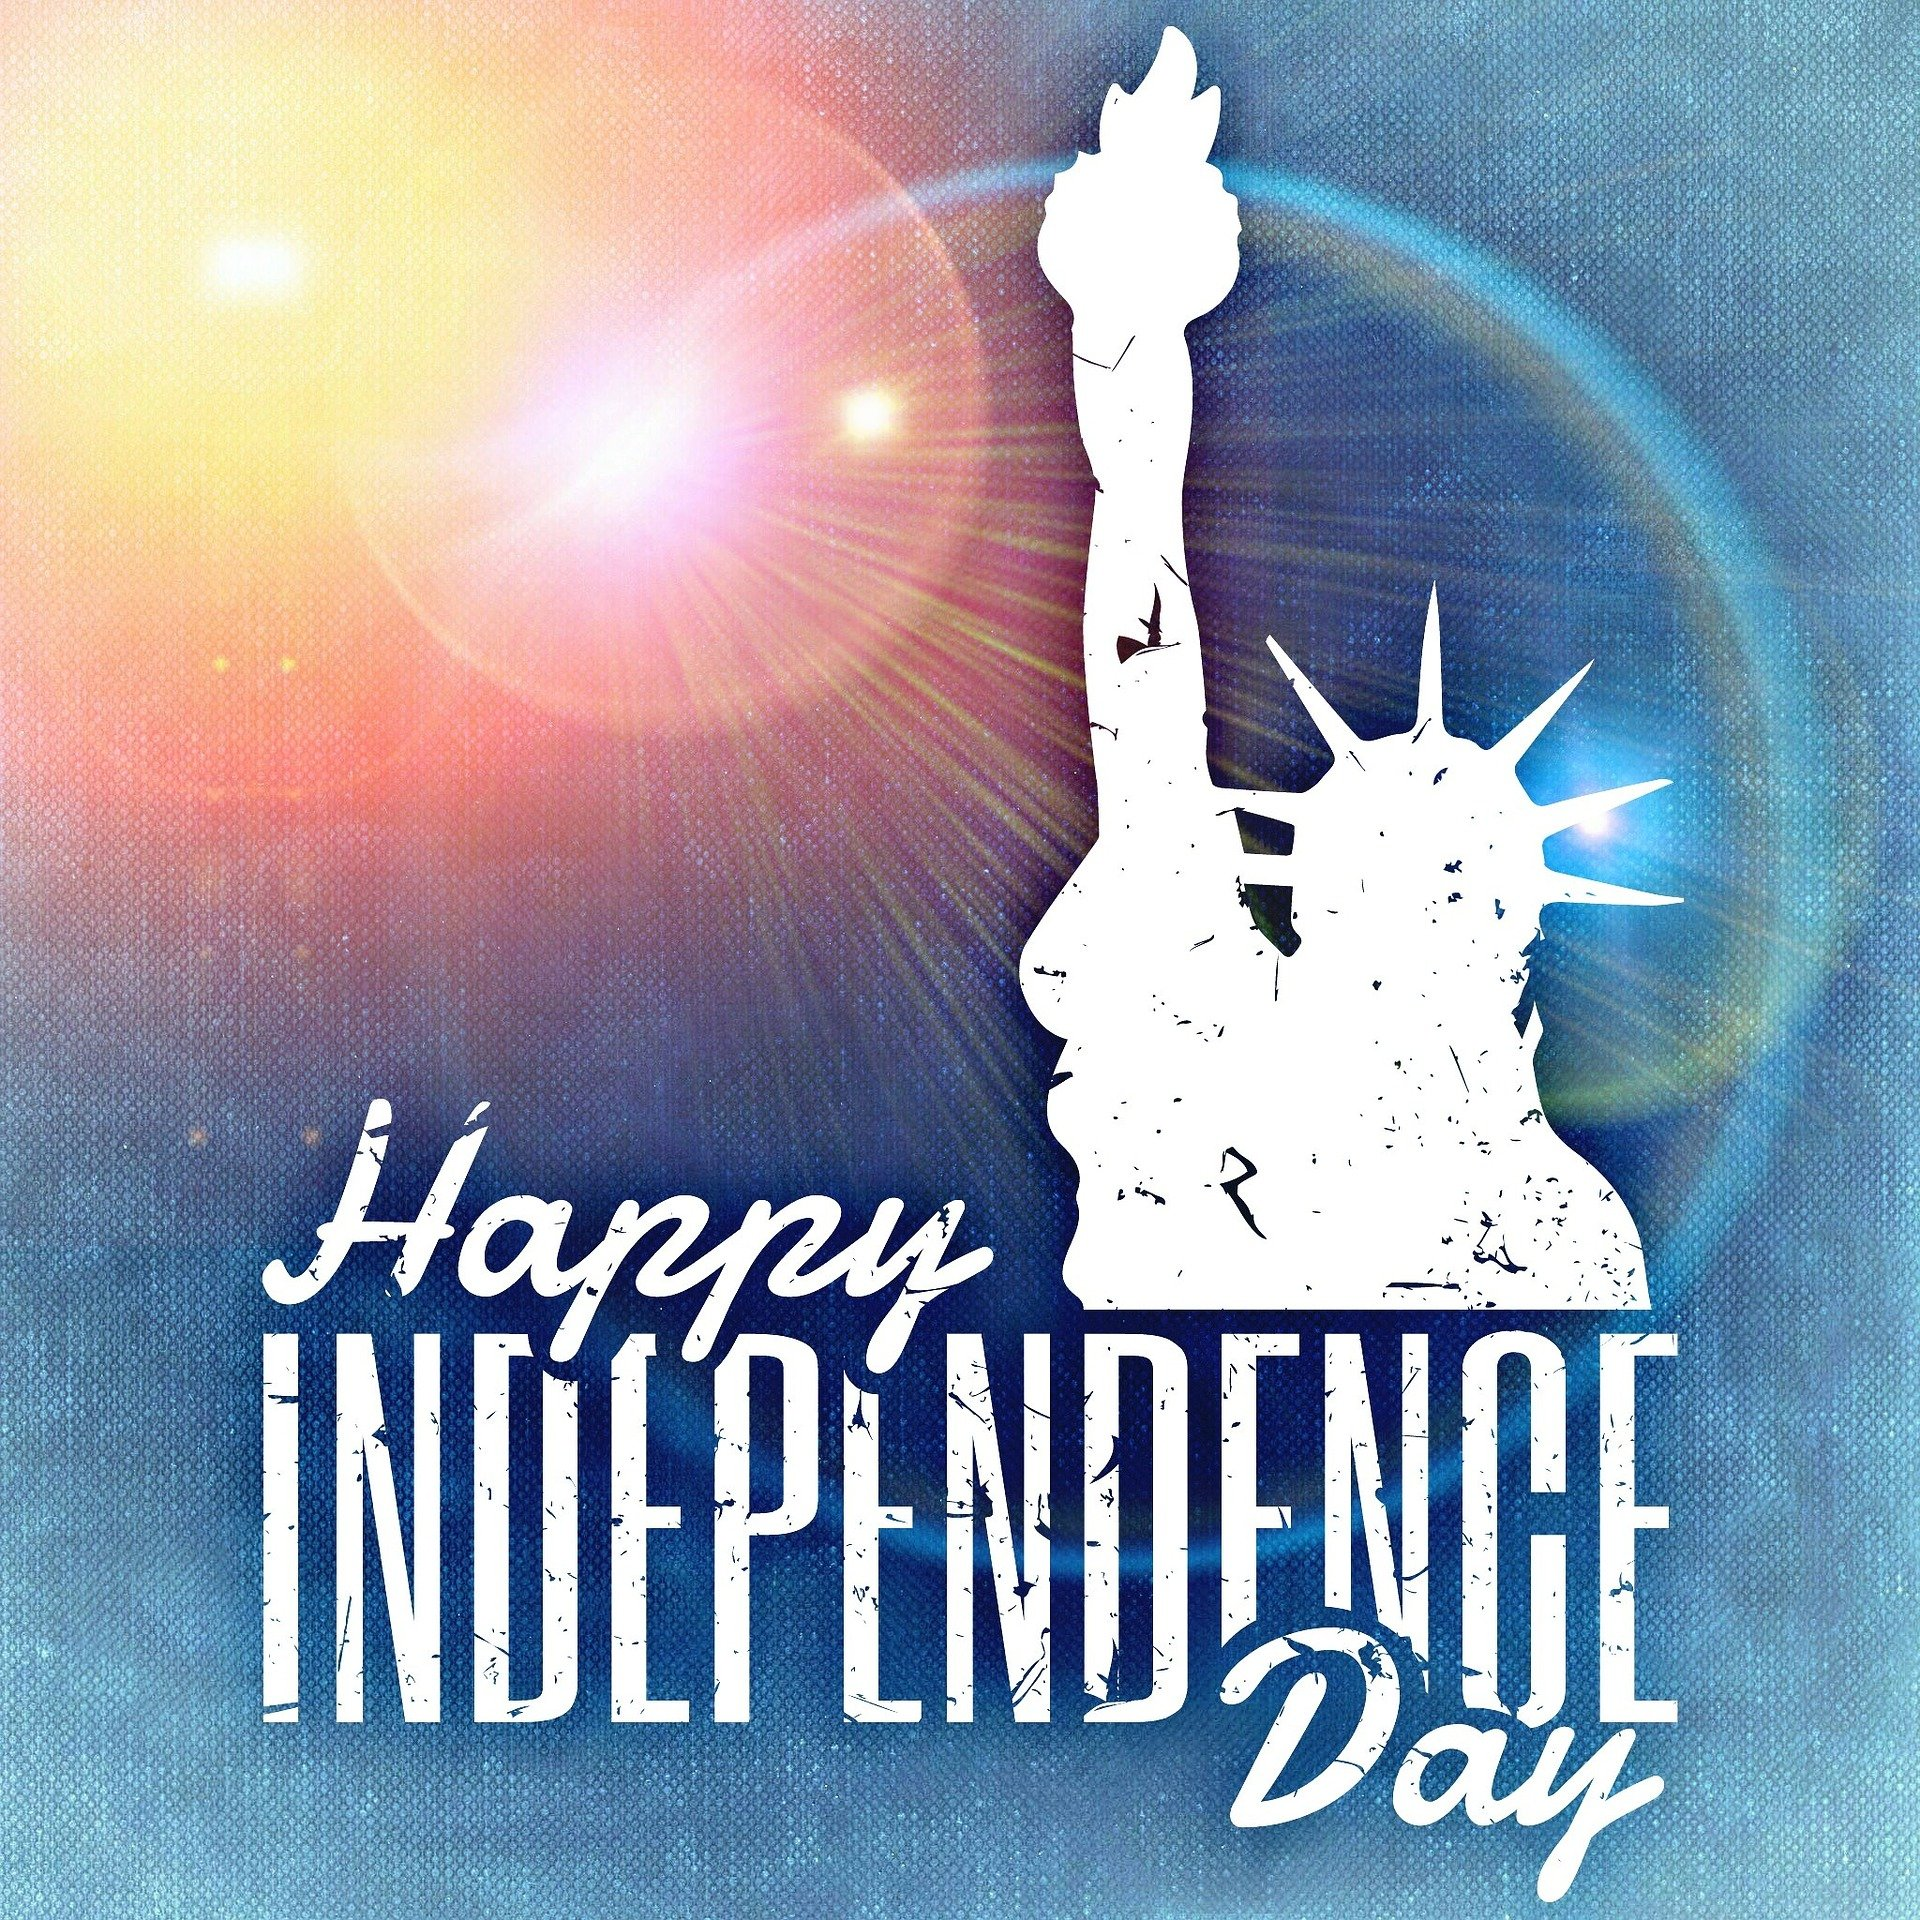 Fourth of July Digital Signage Graphic